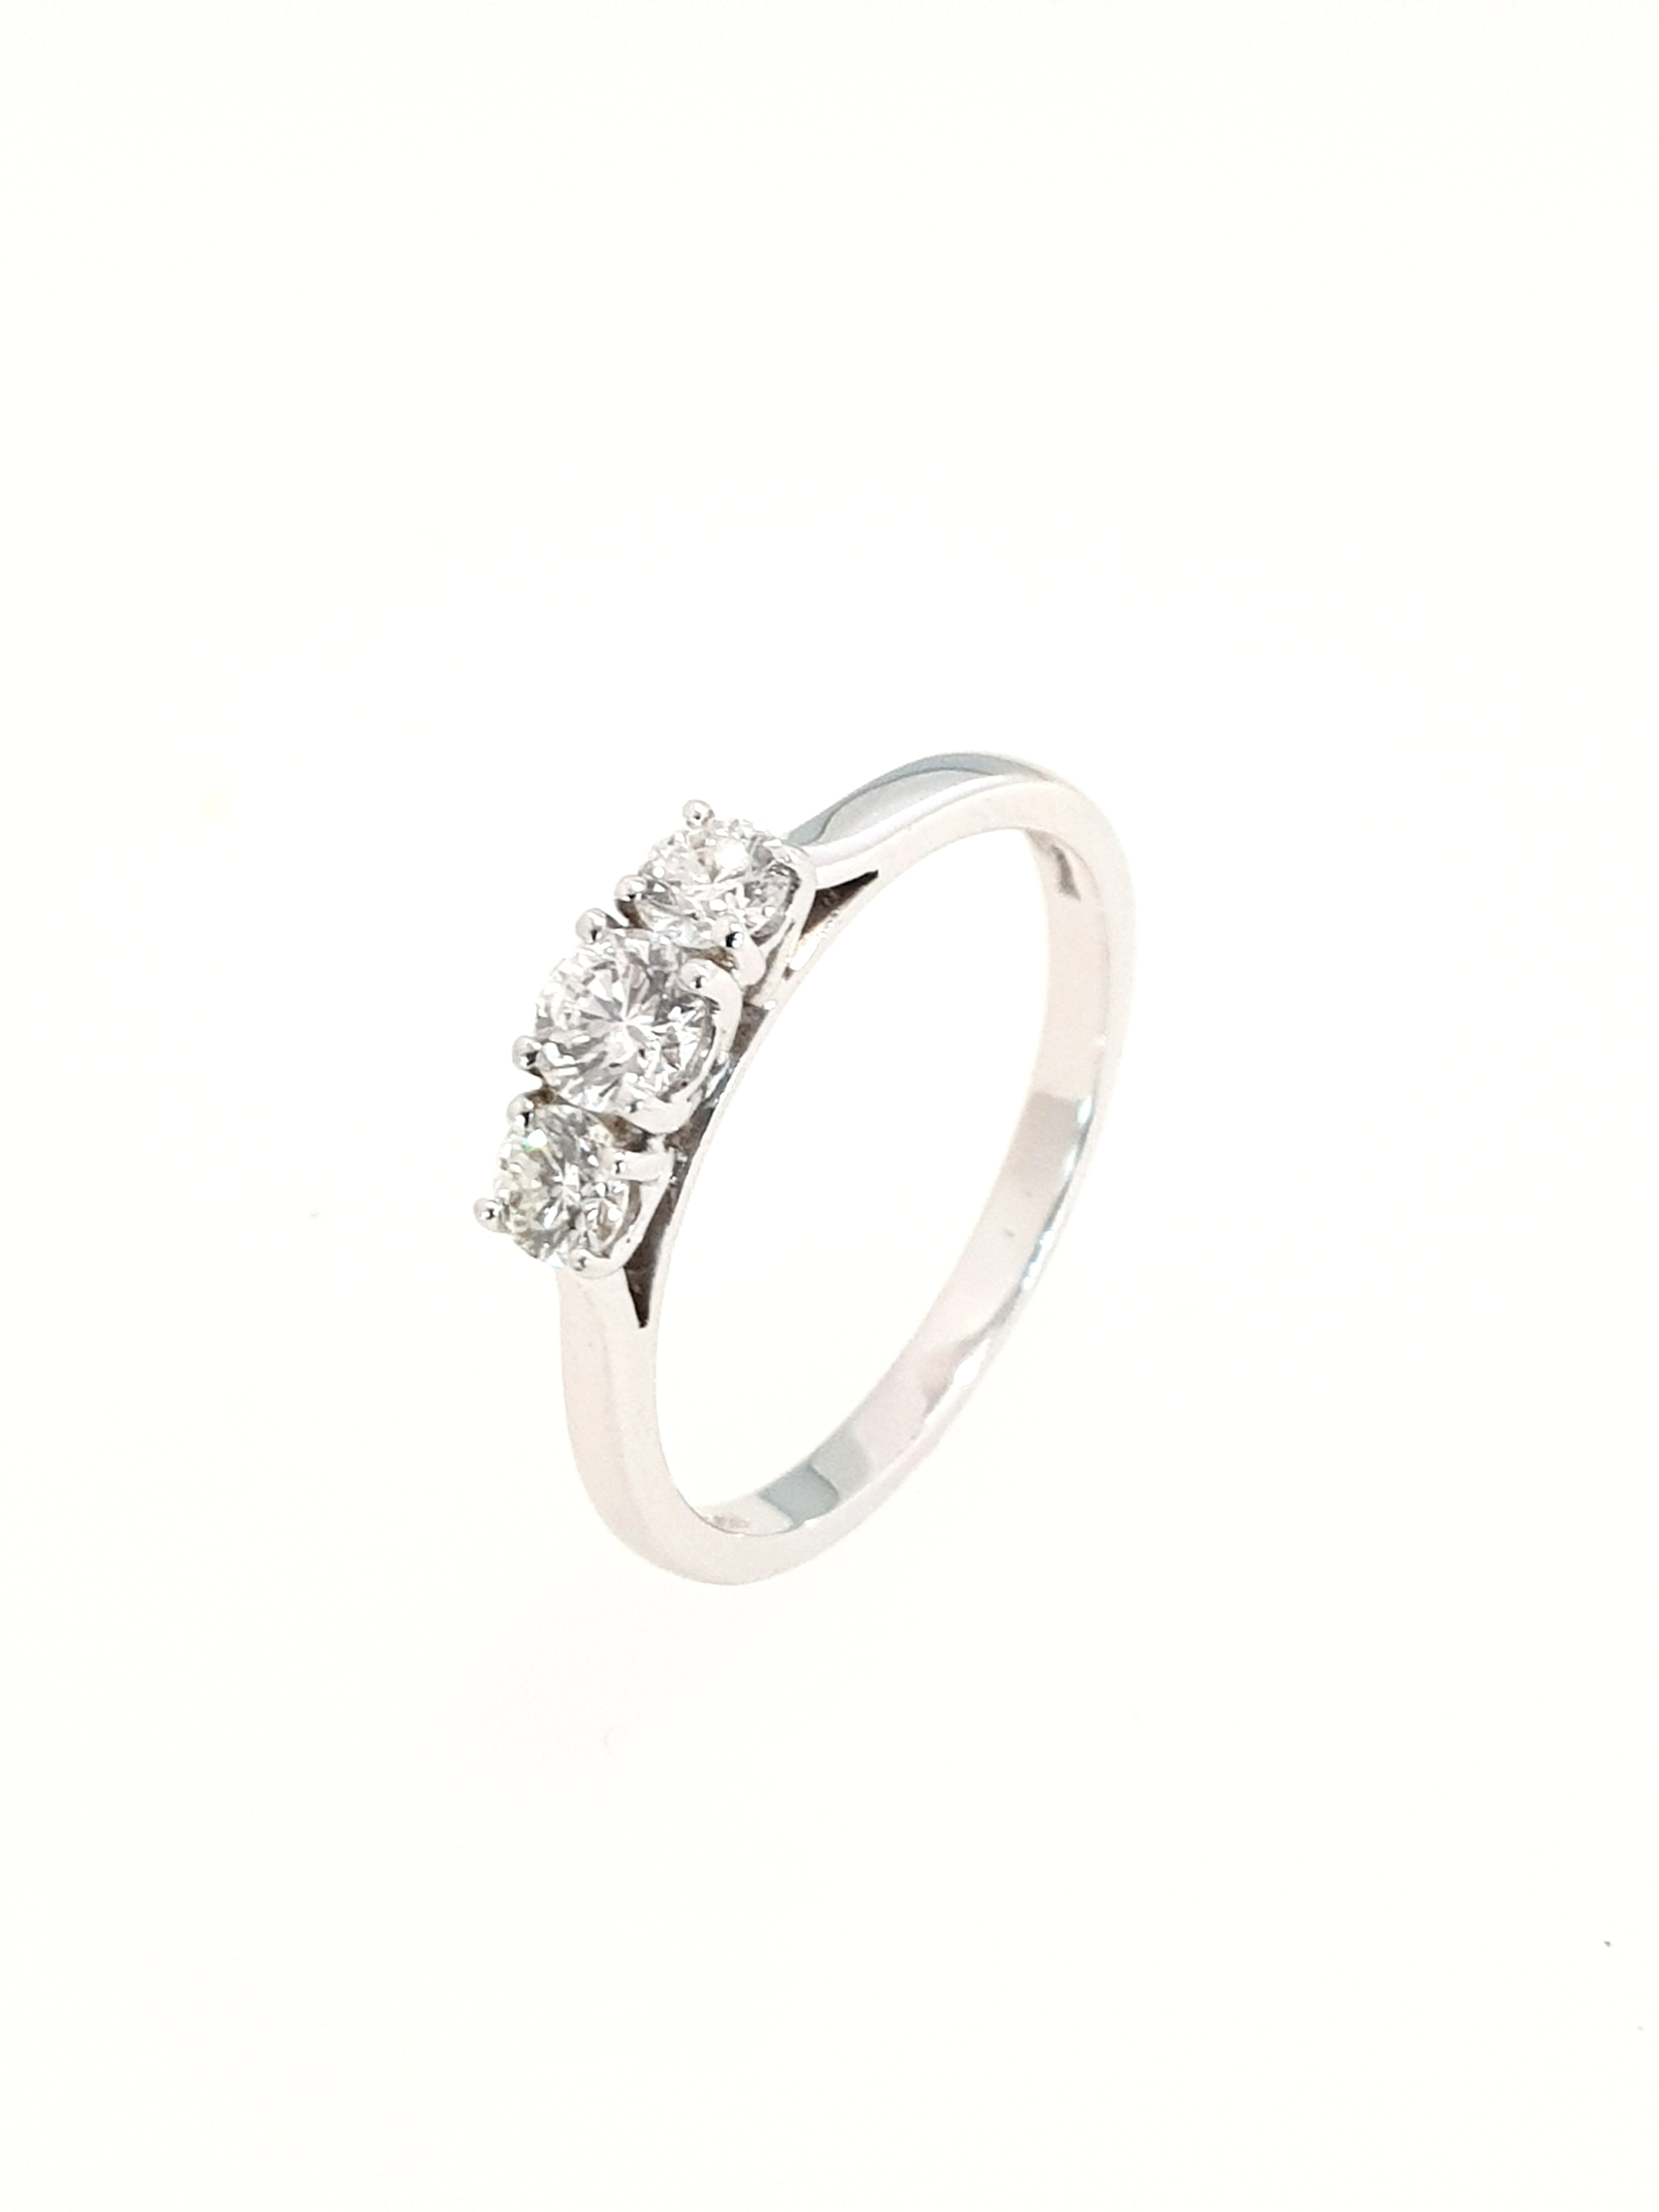 3 Stone Diamond Ring in White Gold  .50ct, G, Si1  Stock Code: N8286  £2200